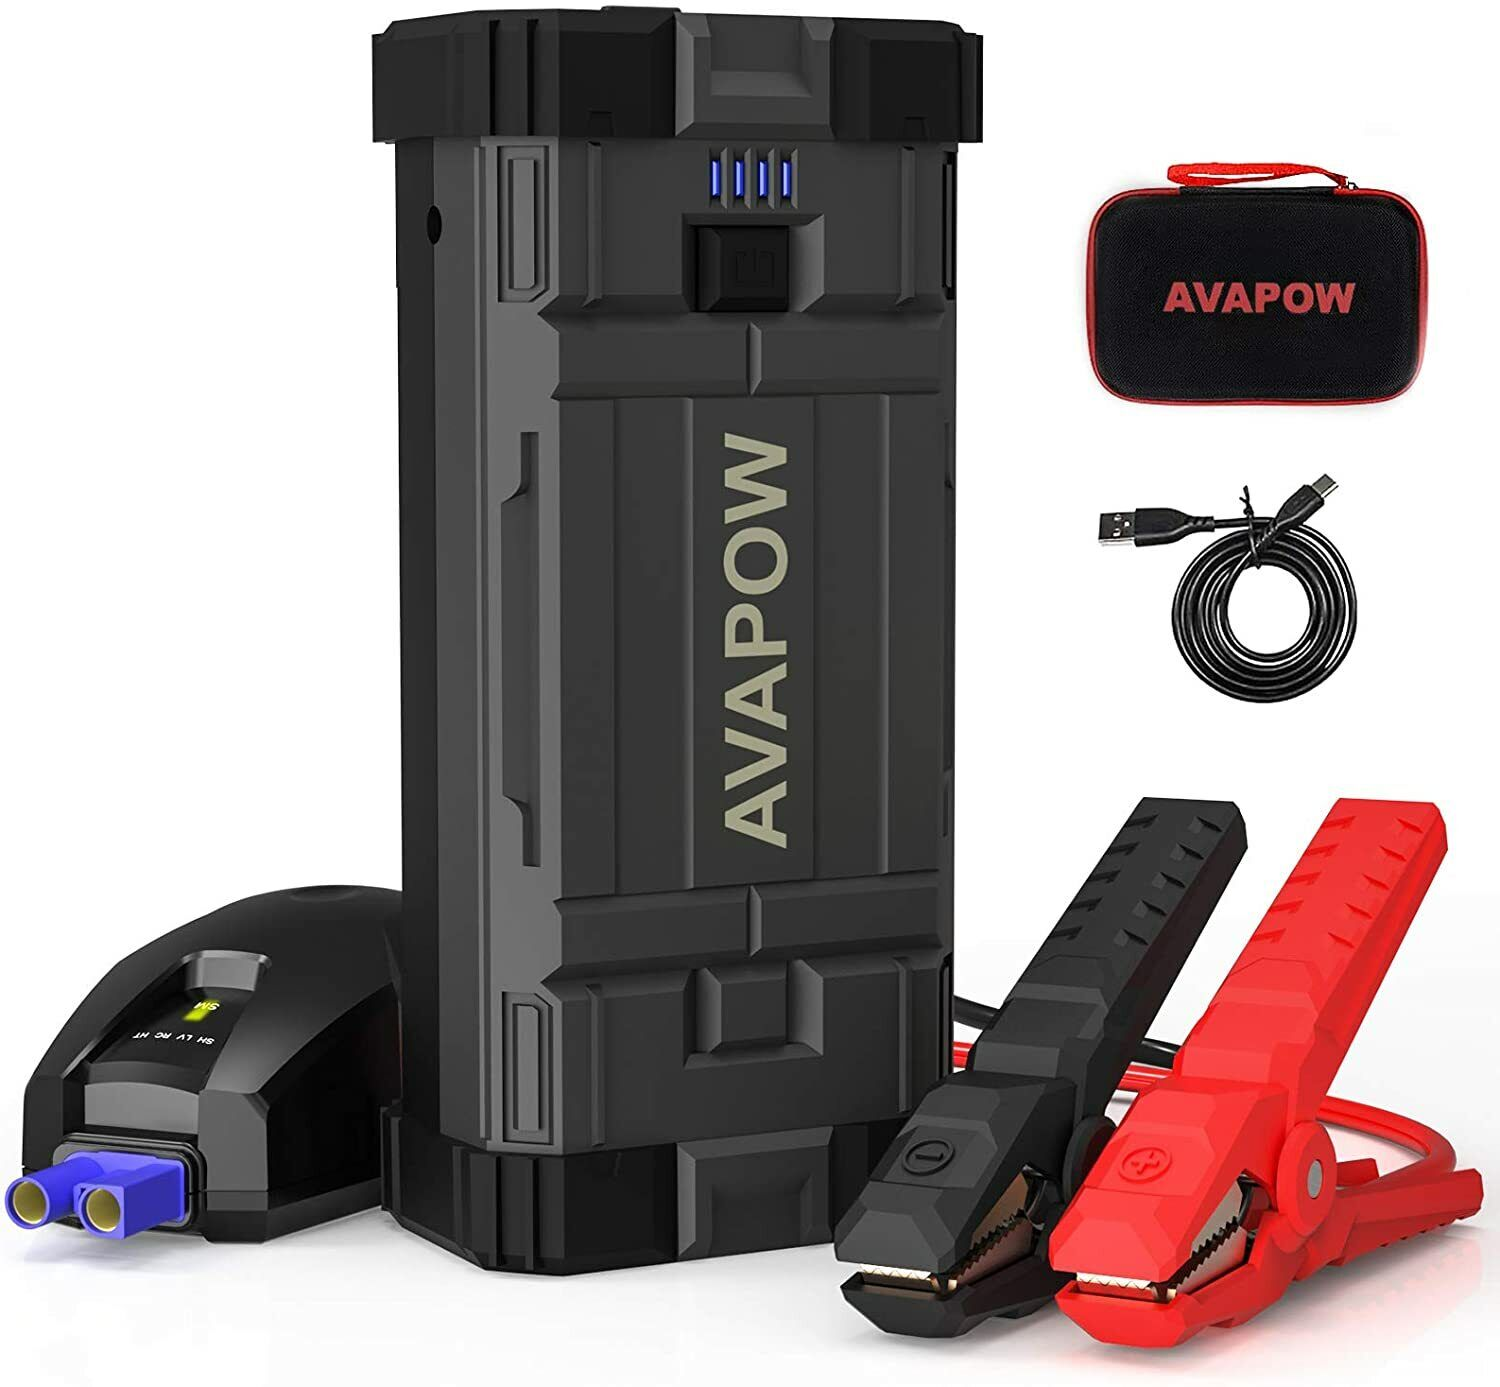 ⚡ AVAPOW Upgraded Car Jump Starter 2000A Peak 18000mAh Battery Charger Sealed